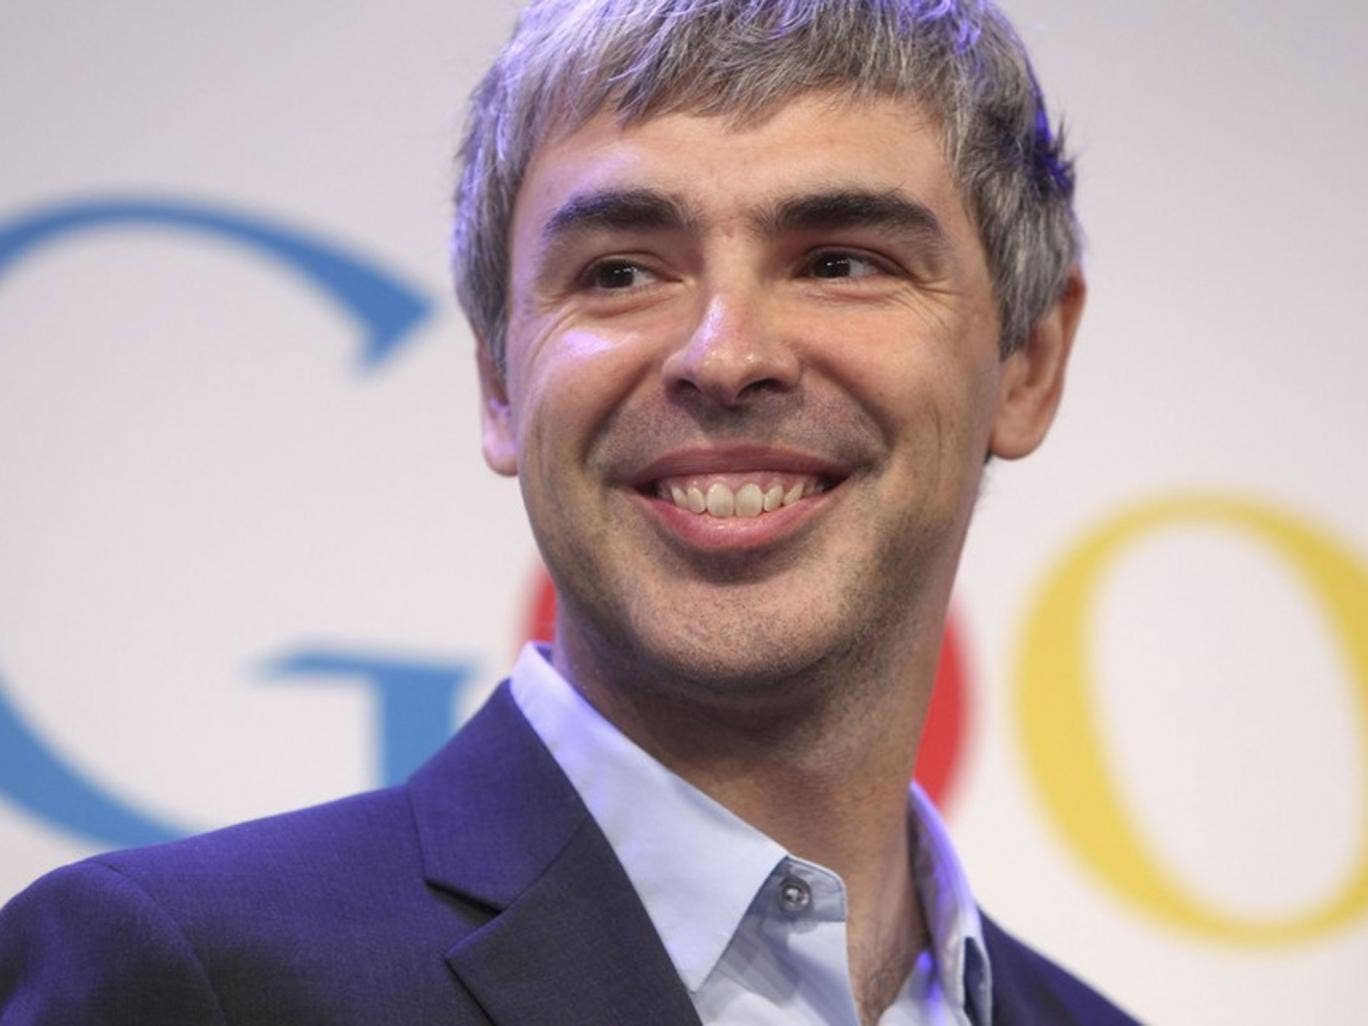 Larry Page: Net worth: $23 billion; Country: U.S; Source - larry-page